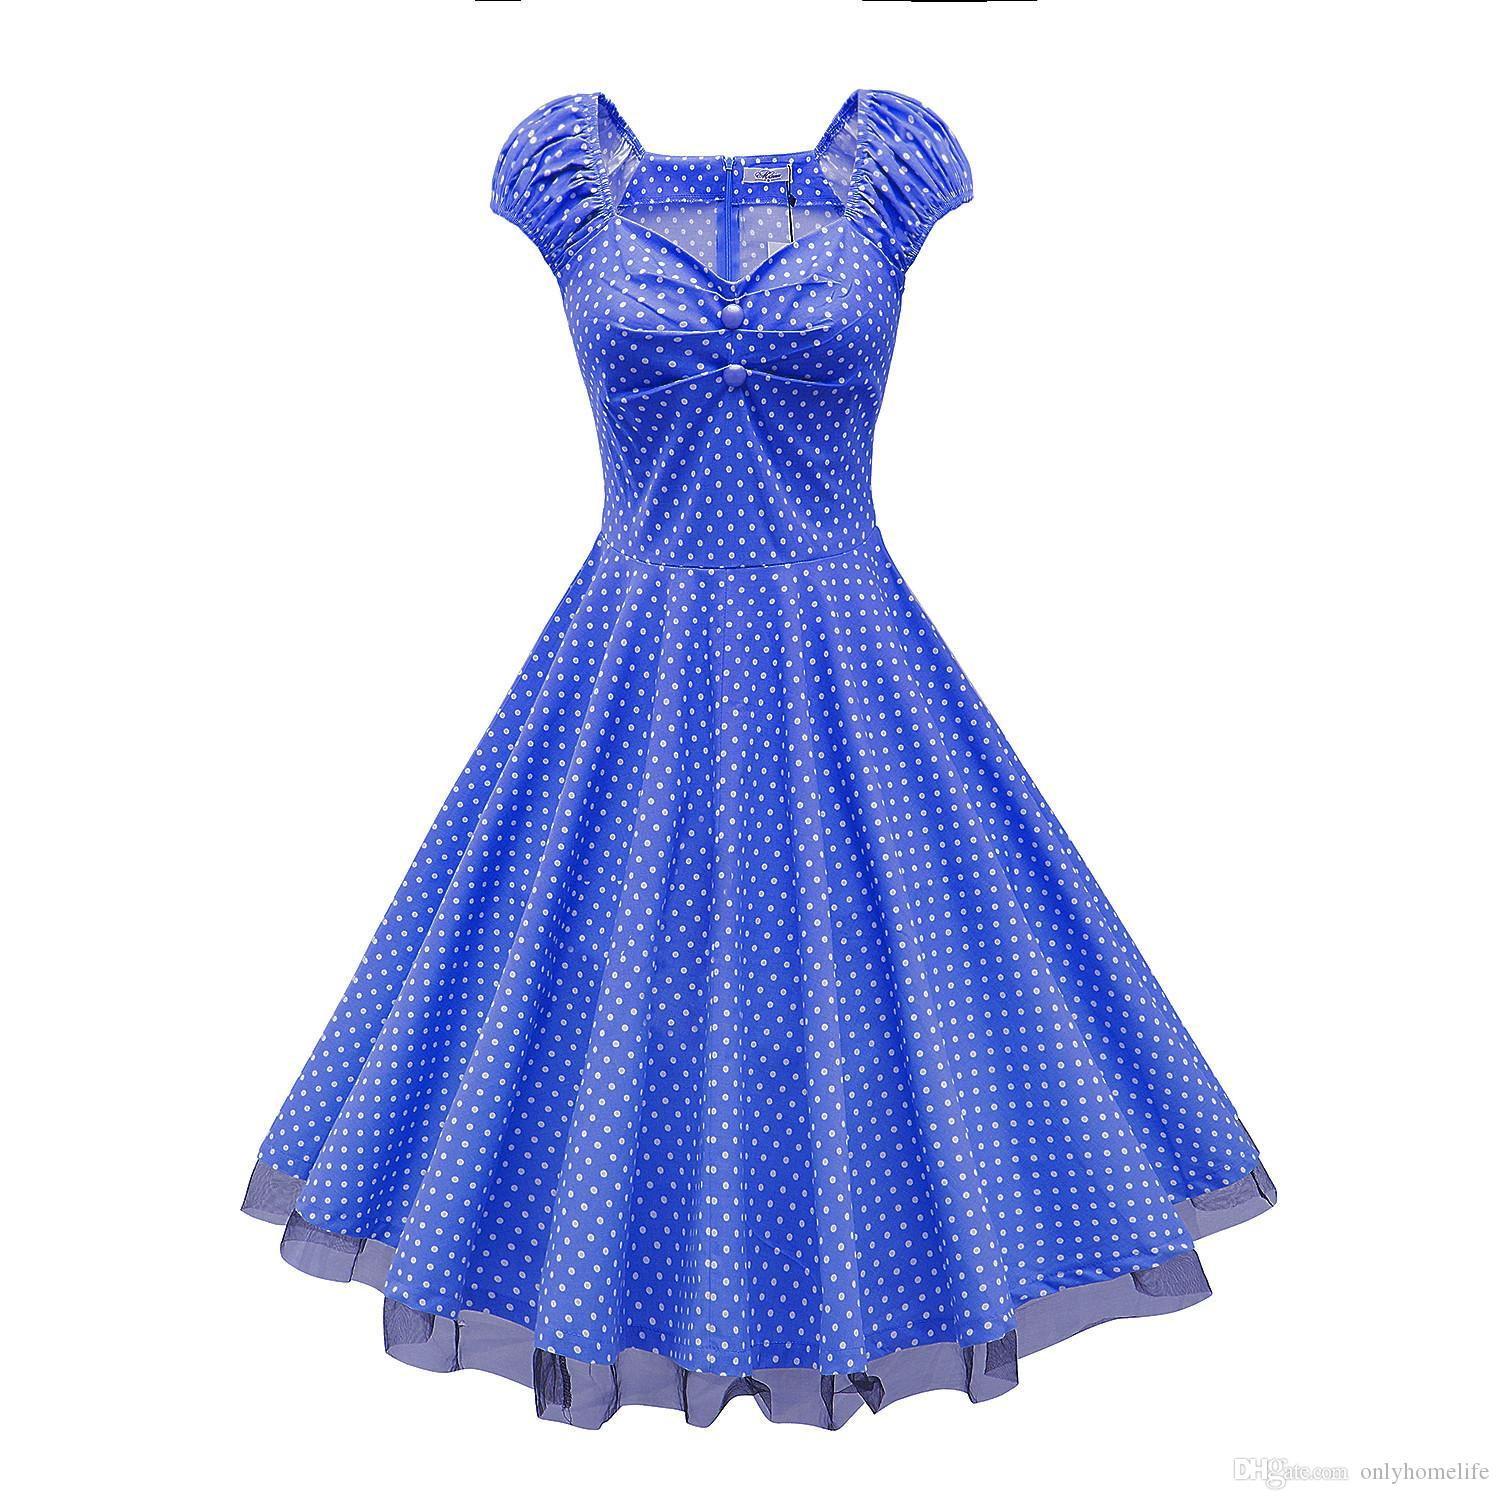 Womens 50s Retro Vintage Cocktail Dress Invisible Zipper Polka ...